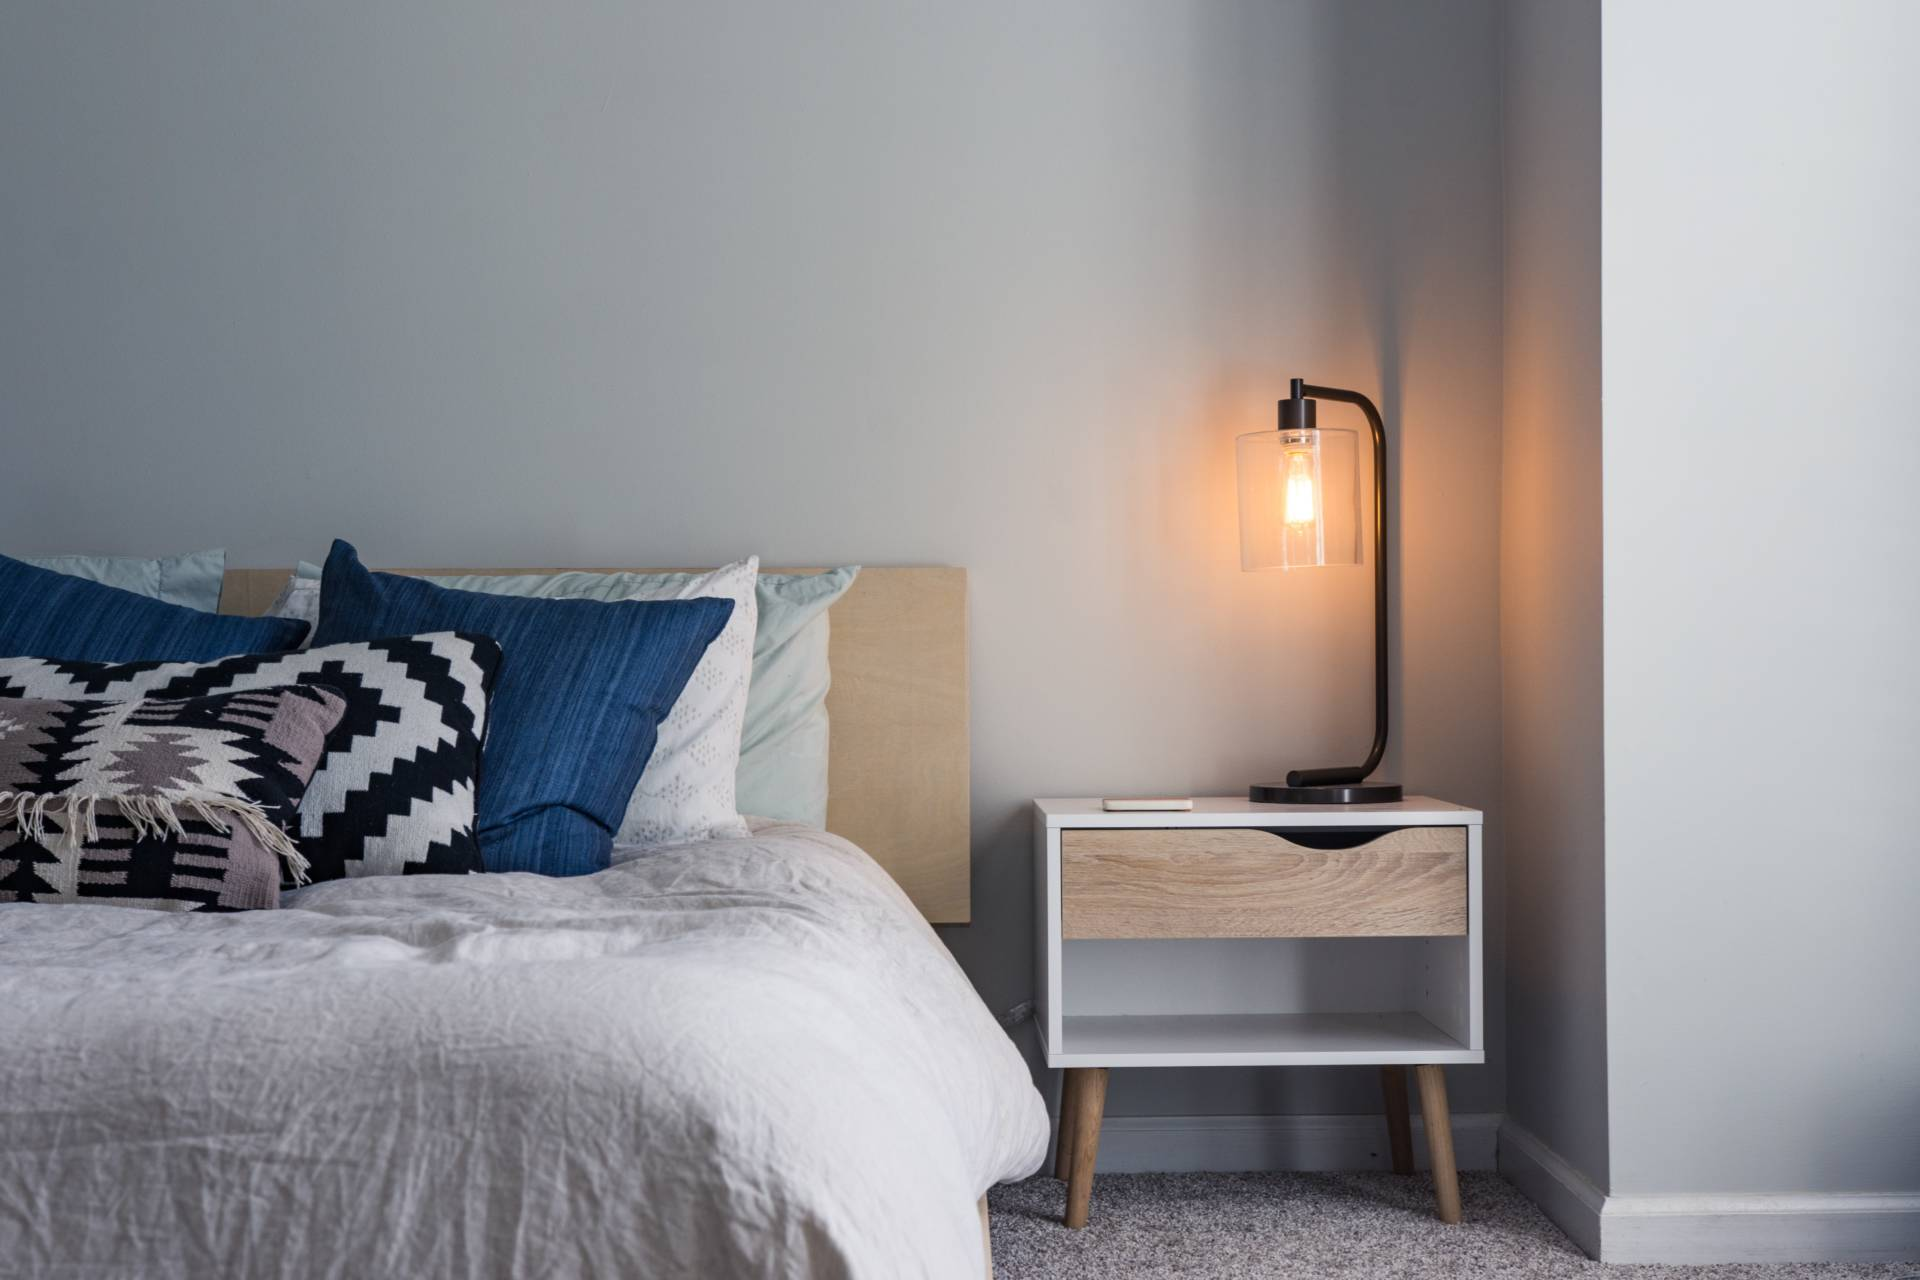 Making The Most Out Of Your Bedroom: The Tips To Help You Do It